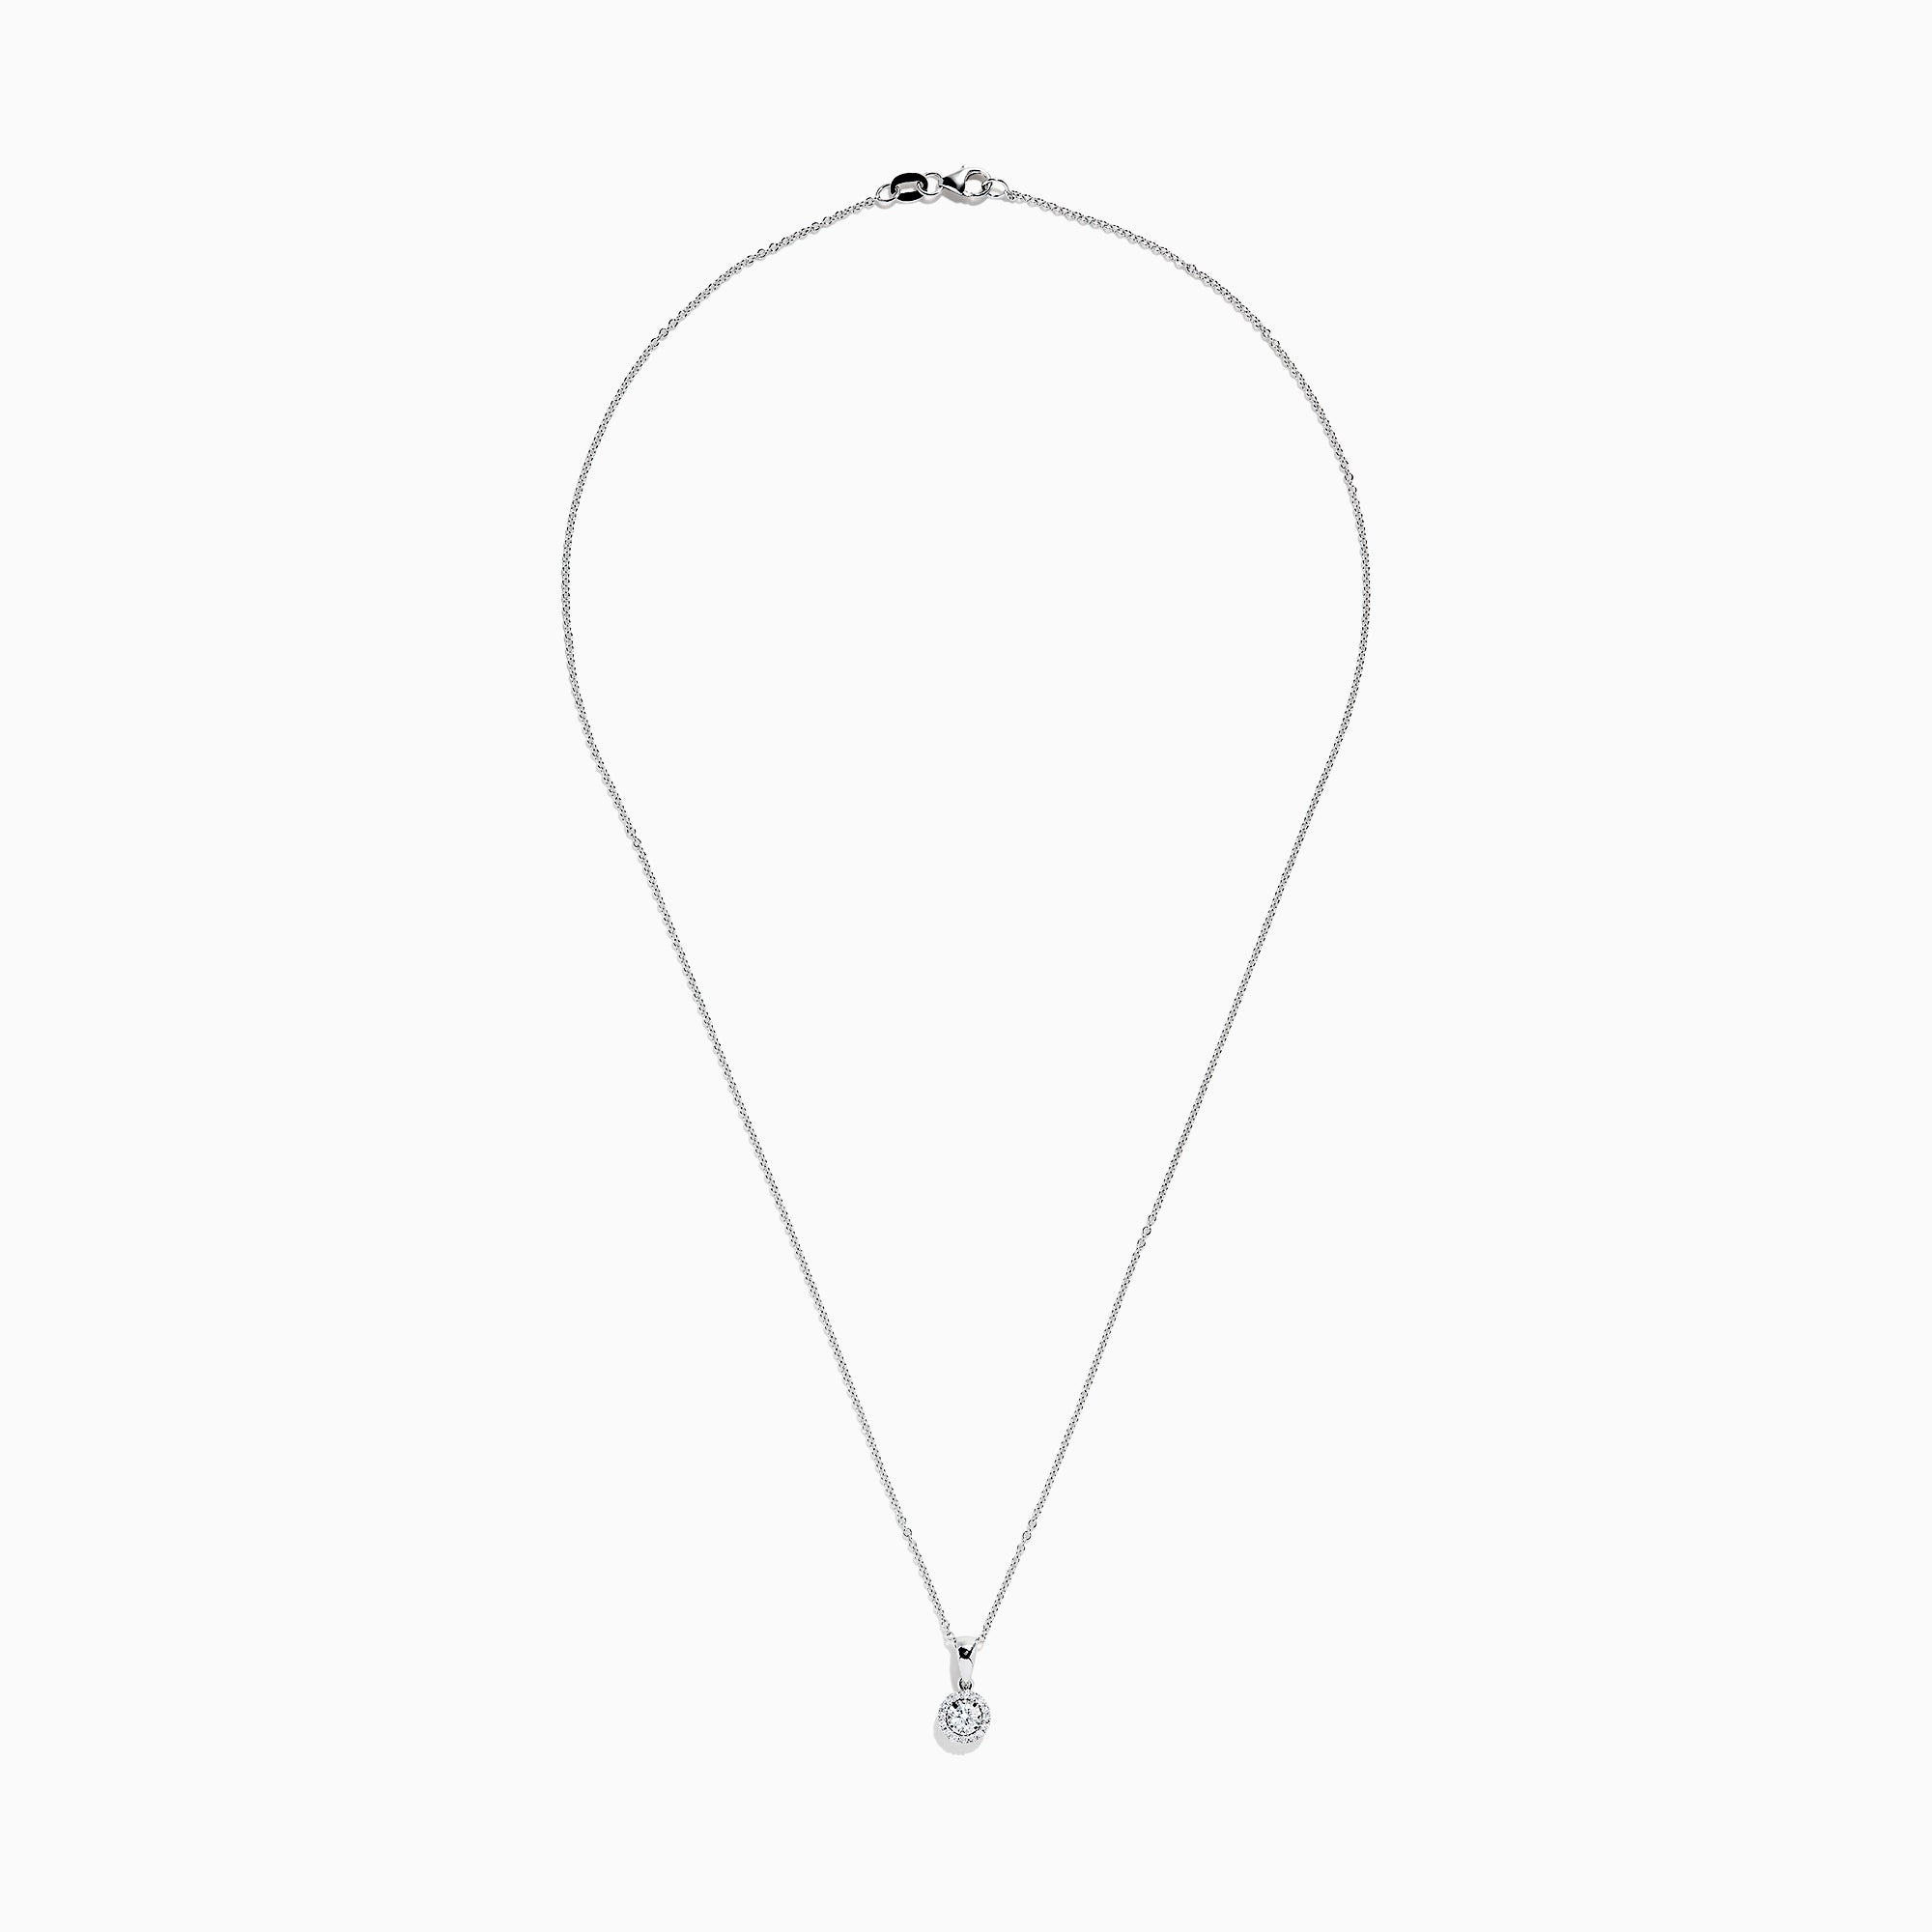 Effy 14K White Gold Diamond Pendant, 0.24 TCW